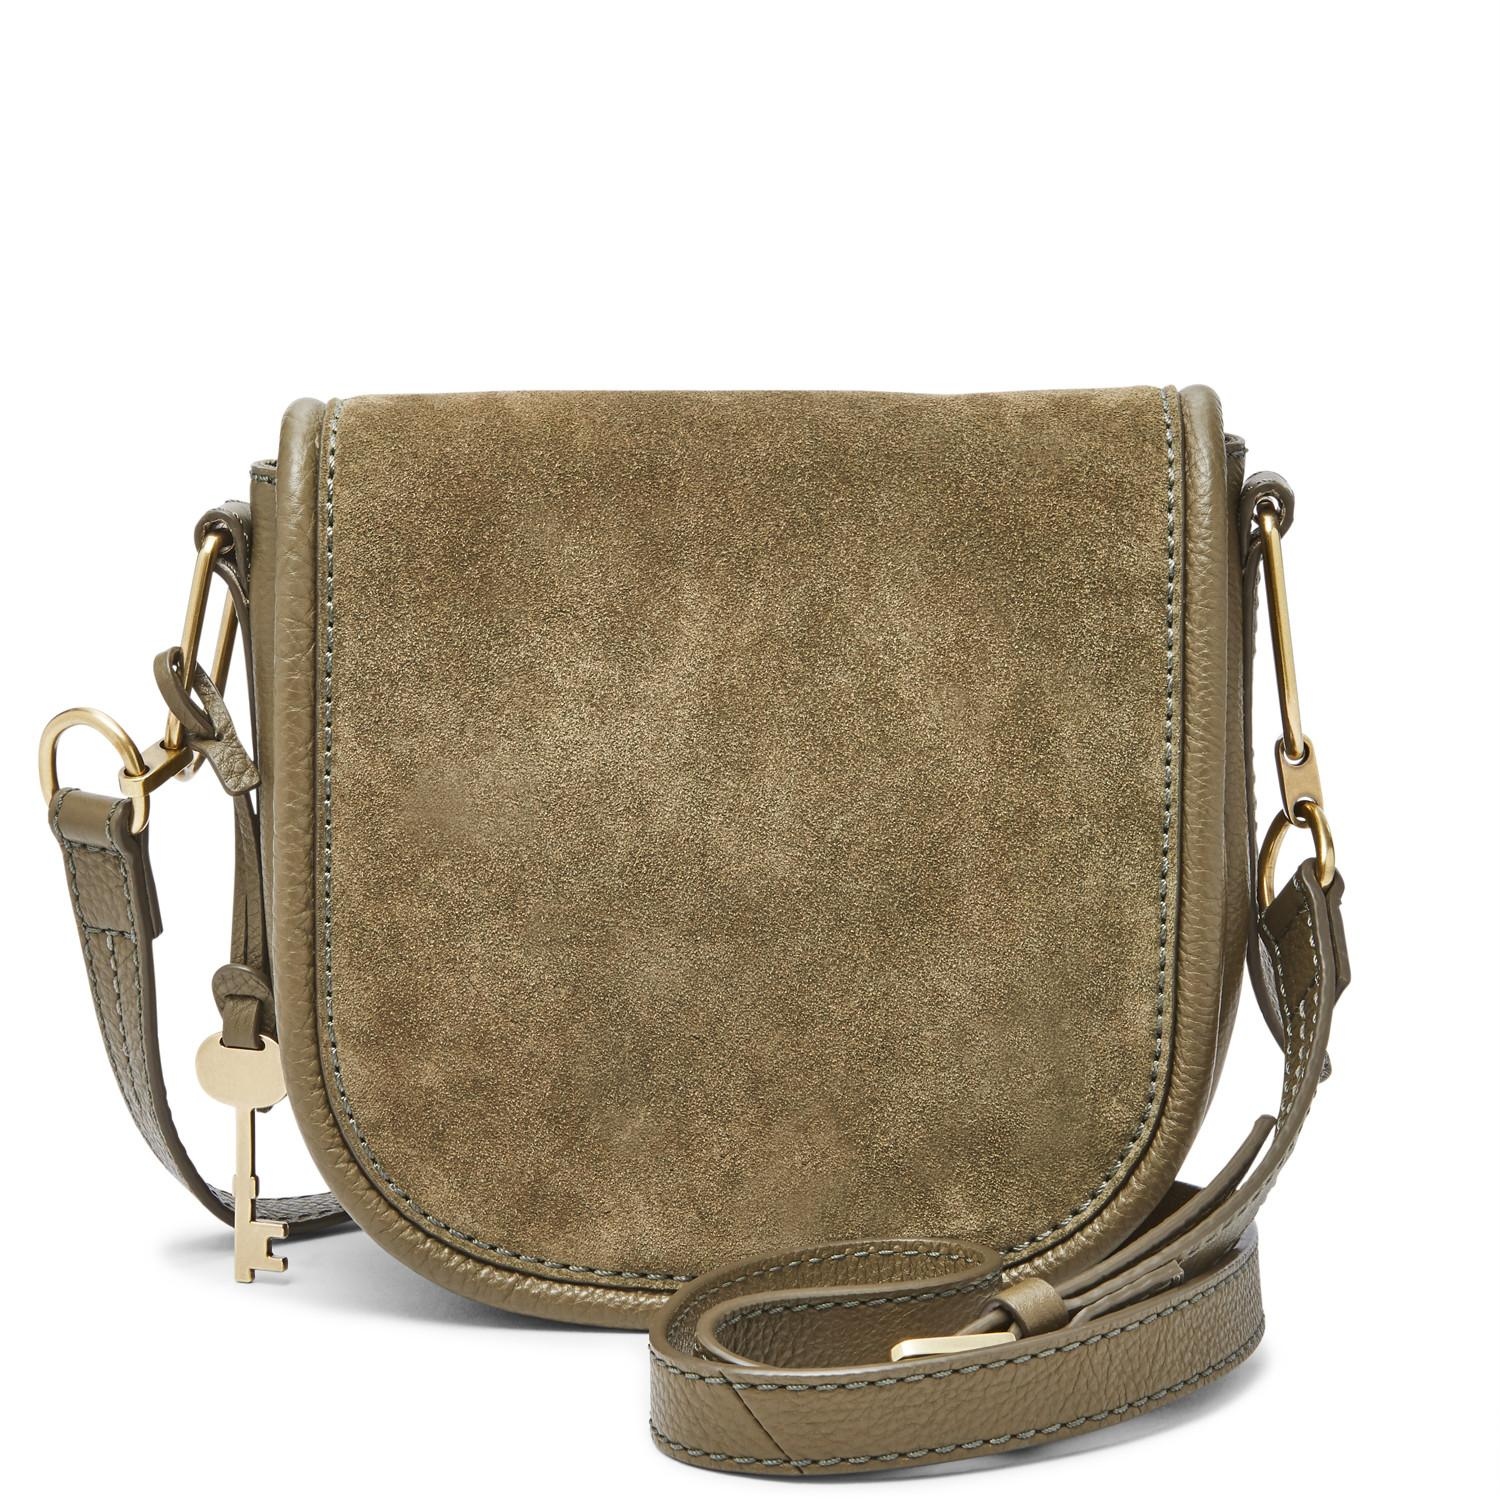 Fossil Rumi - Crossbody Leather - Tas Wanita - ZB7276-382 - SL